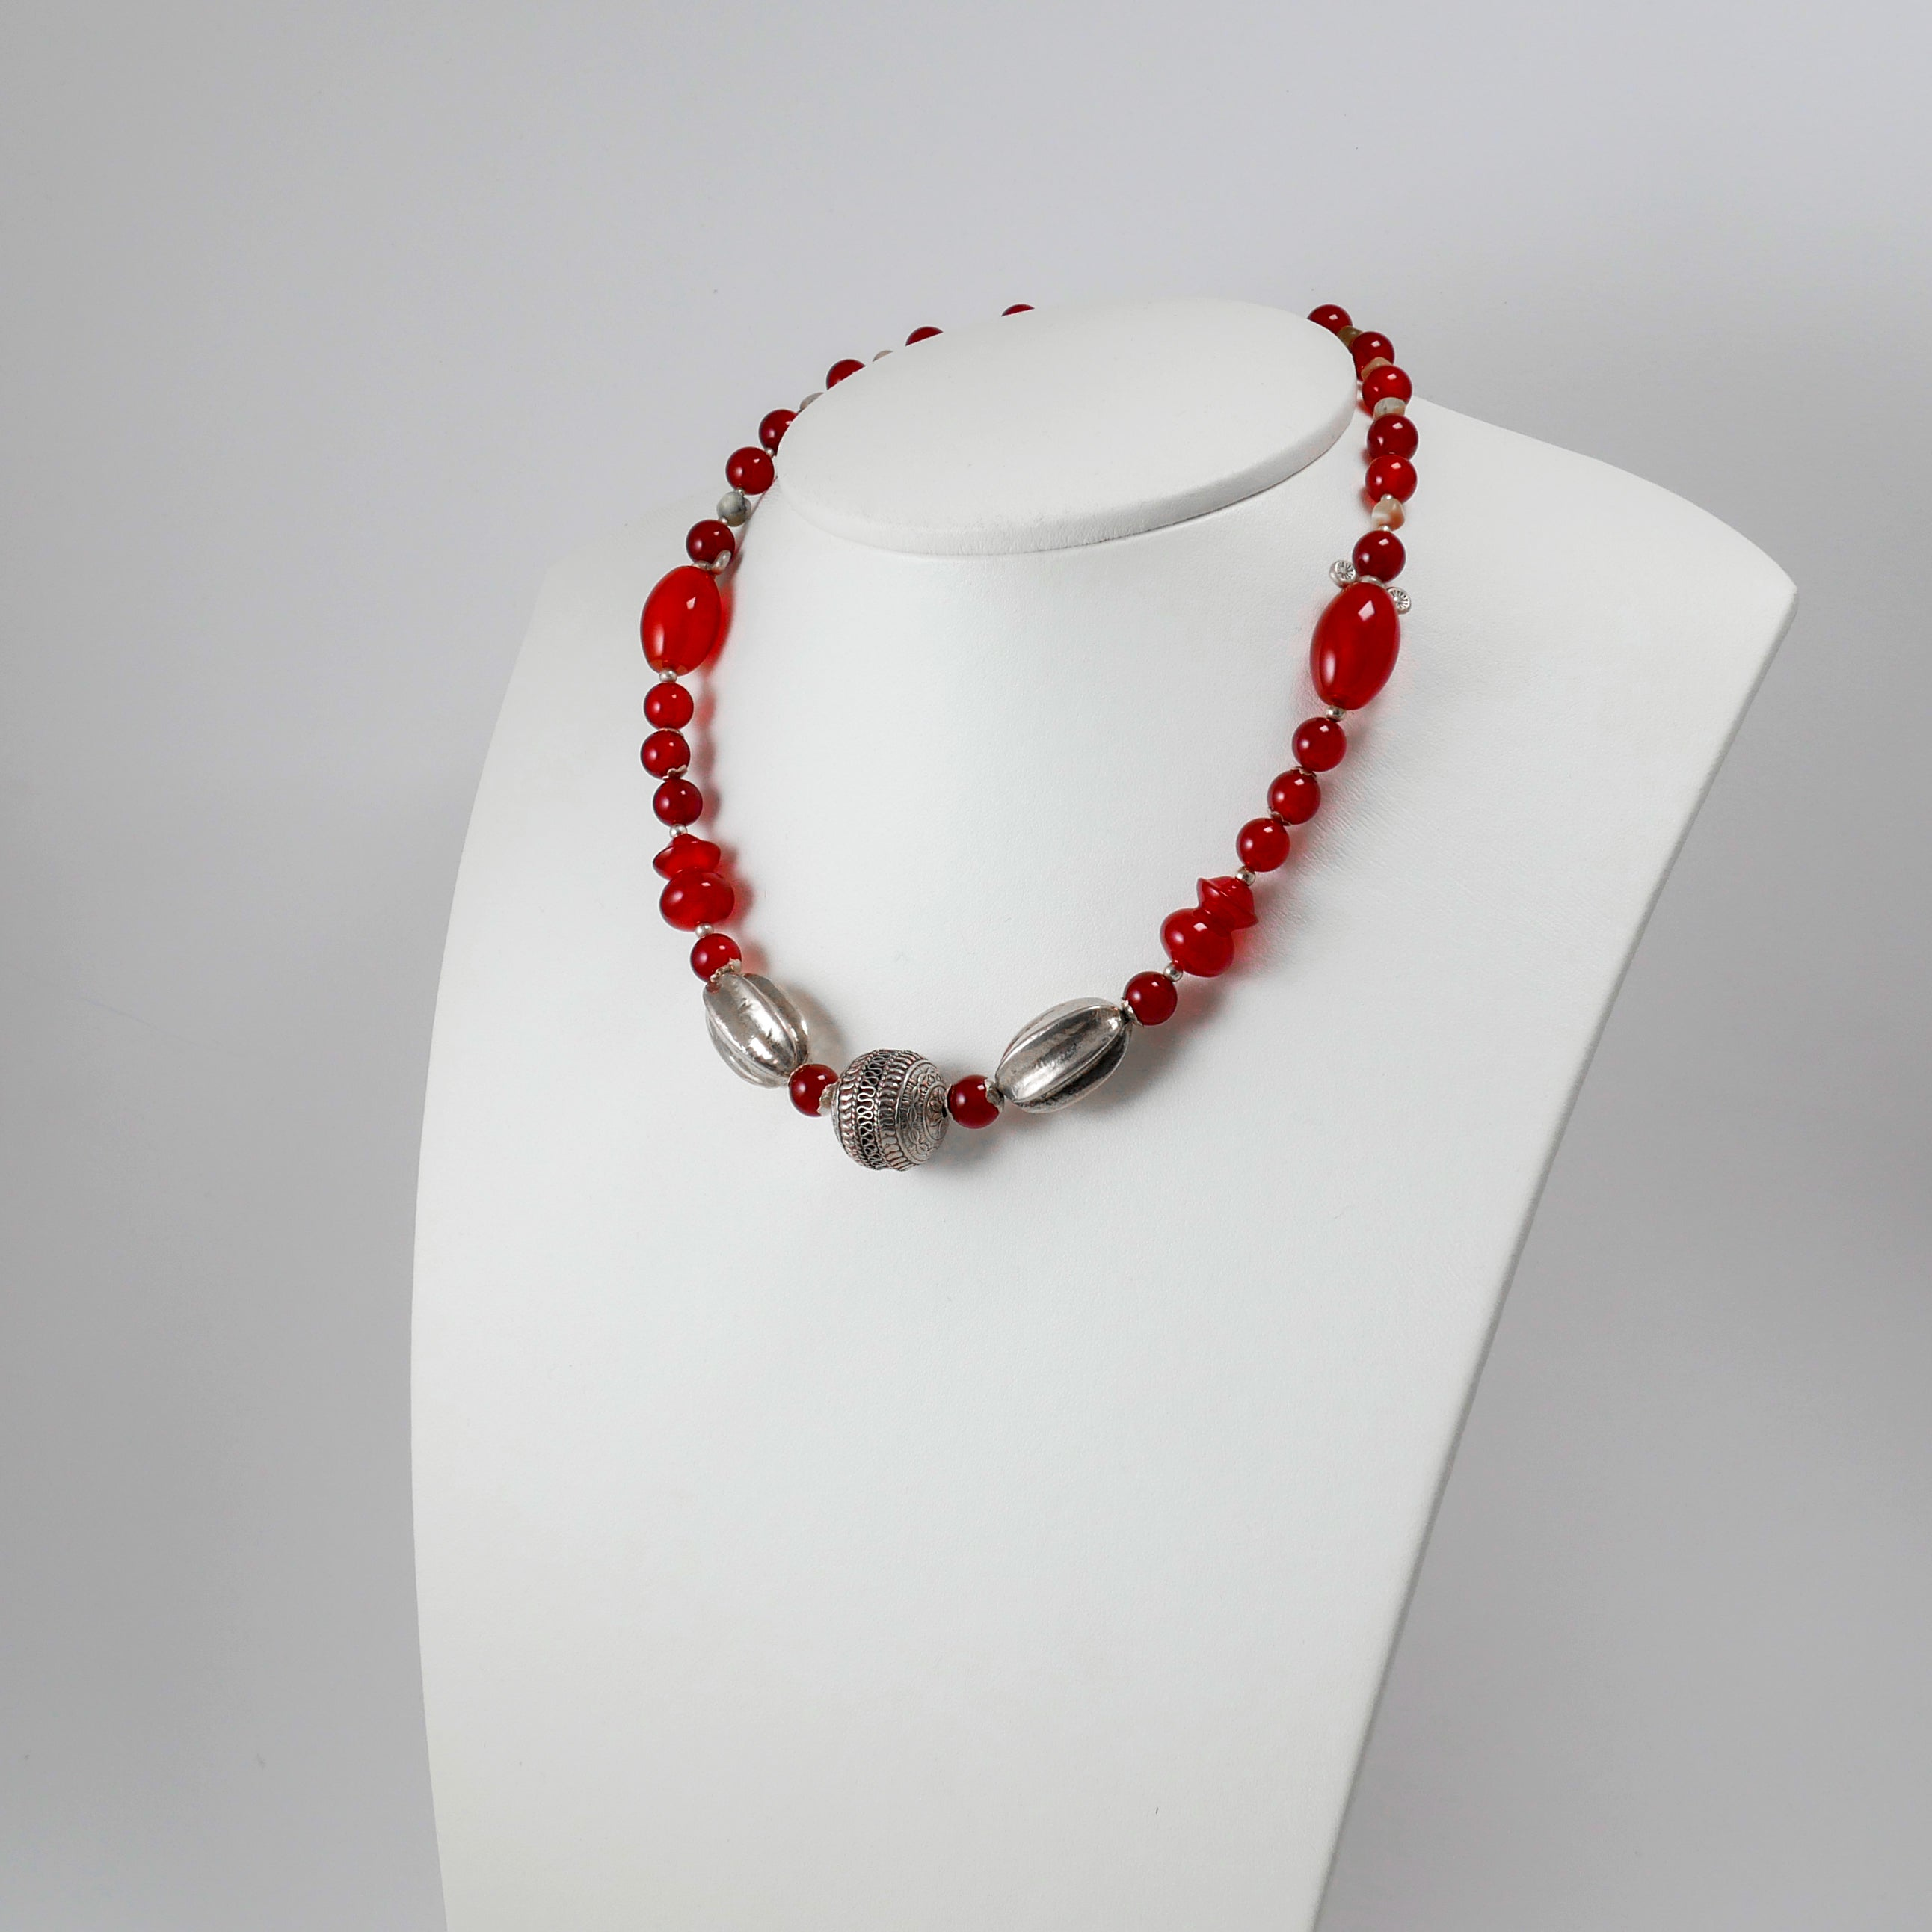 Traditional Greek Style Necklace - Katerina Roukouna